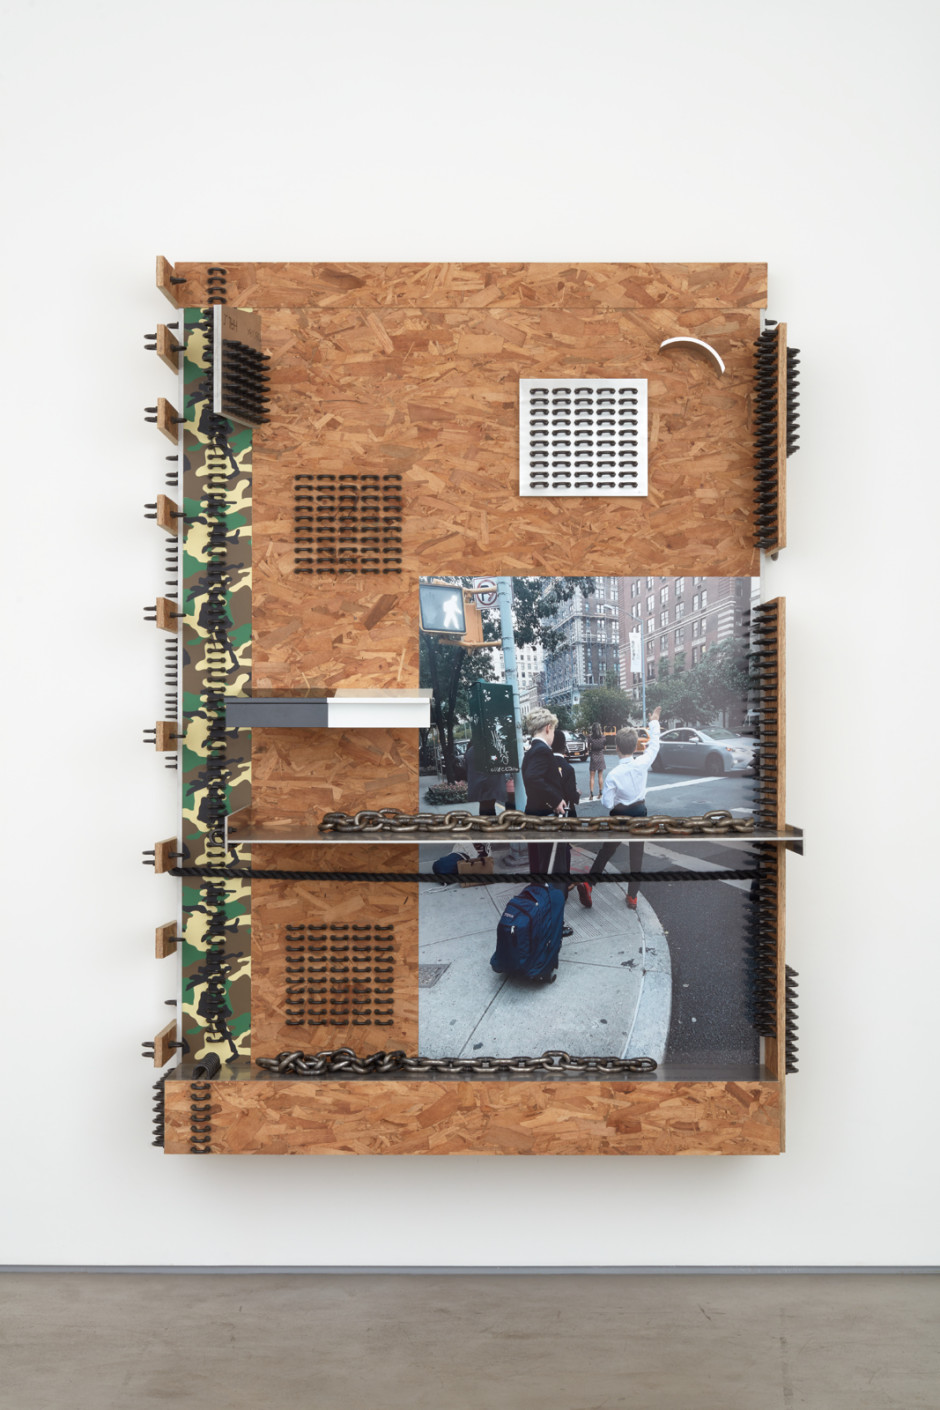 """Untitled, 2018  aluminium alloy 6061, CNC milled oriented strand board, inkjet printed paper on aluminium substrate, 5/8"""" steel chain, black oxide U-bolts, screen printed birch plywood  222.9 x 166.1 x 60.1  87 ¾ x 65 ⅜ x 24 ¼ in."""